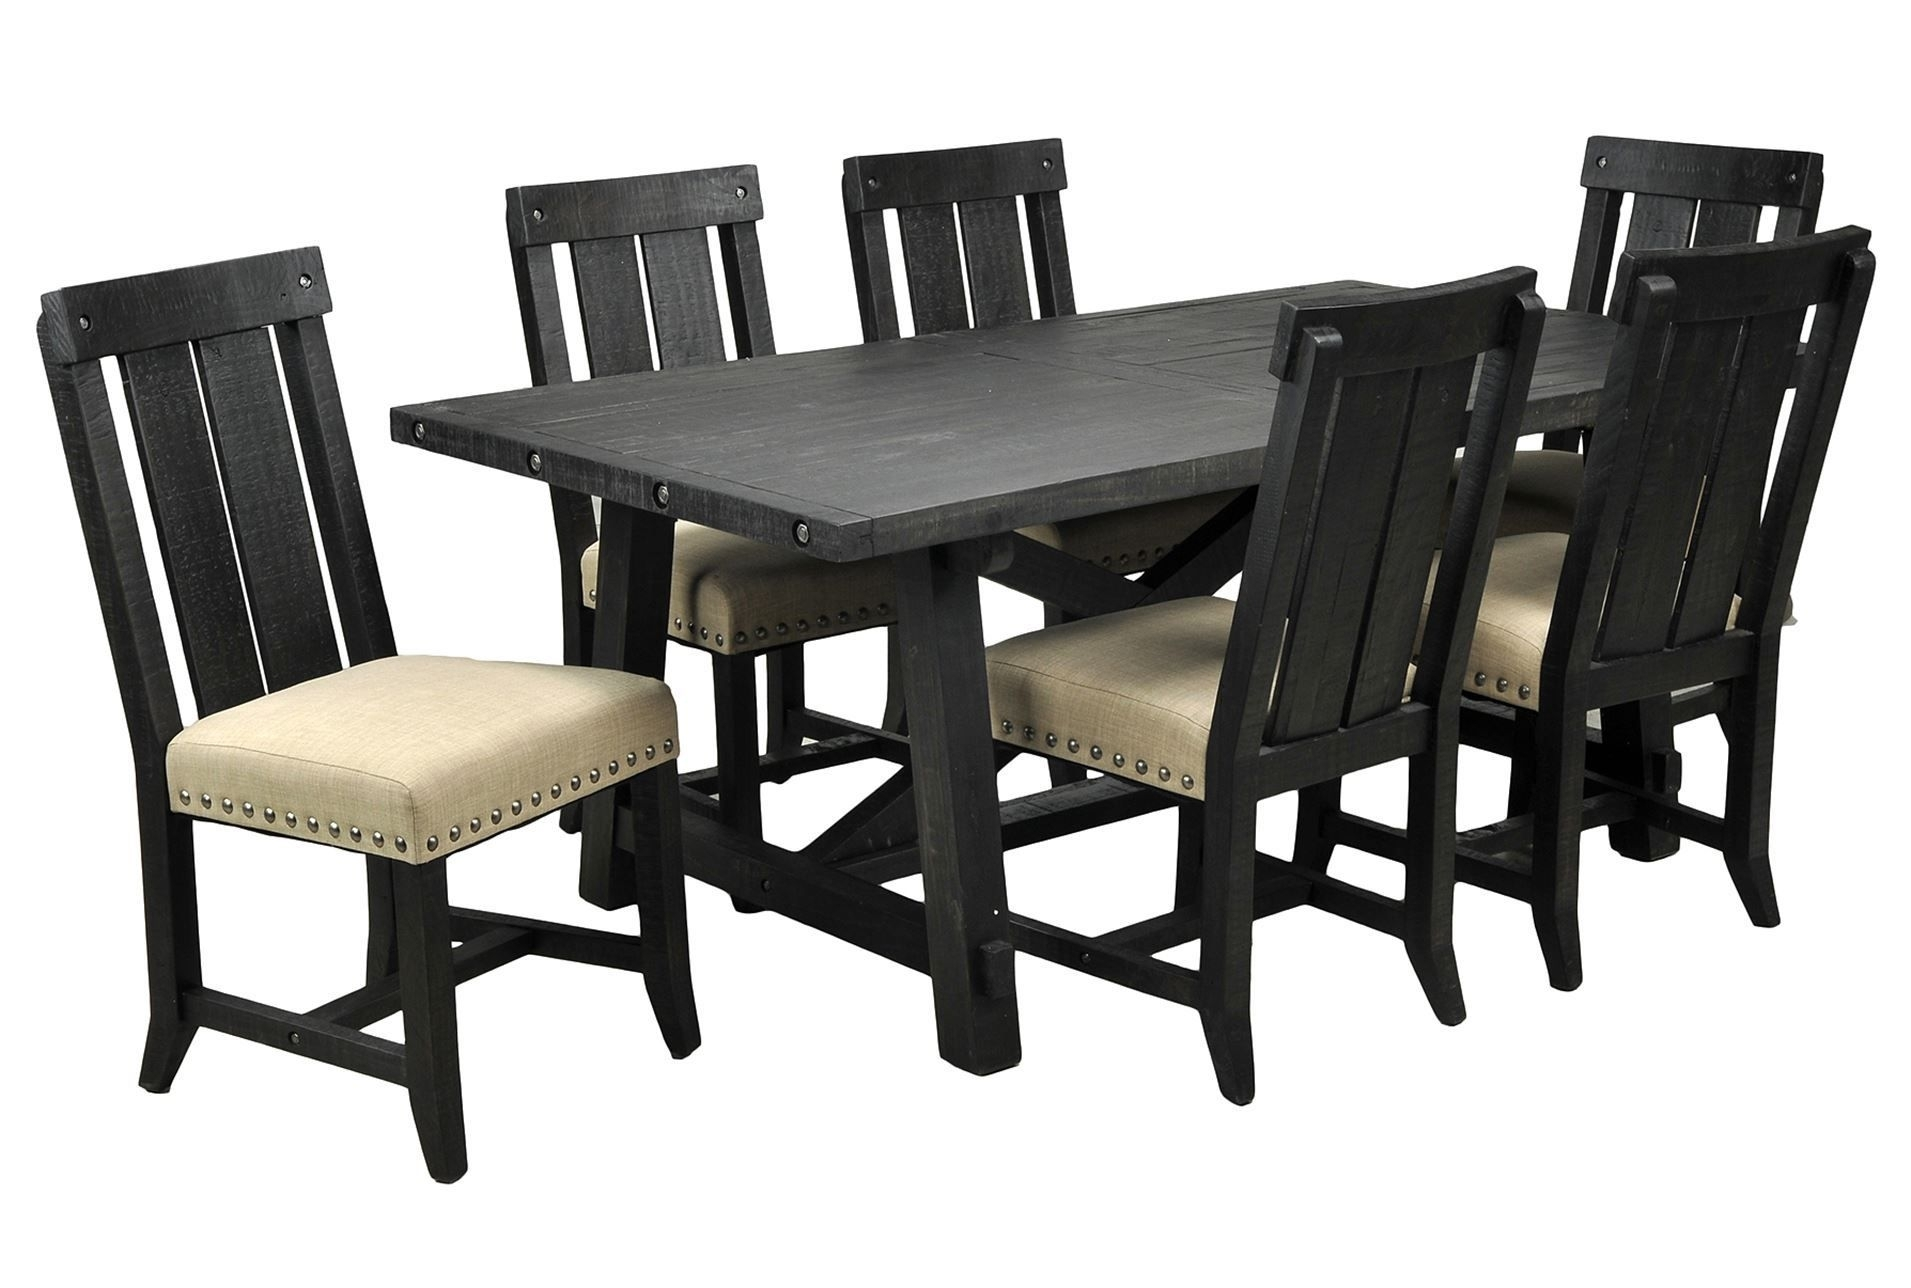 Jaxon 7 Piece Rectangle Dining Set W/wood Chairs | For The House I Throughout Best And Newest Jaxon Grey 7 Piece Rectangle Extension Dining Sets With Wood Chairs (Image 8 of 20)